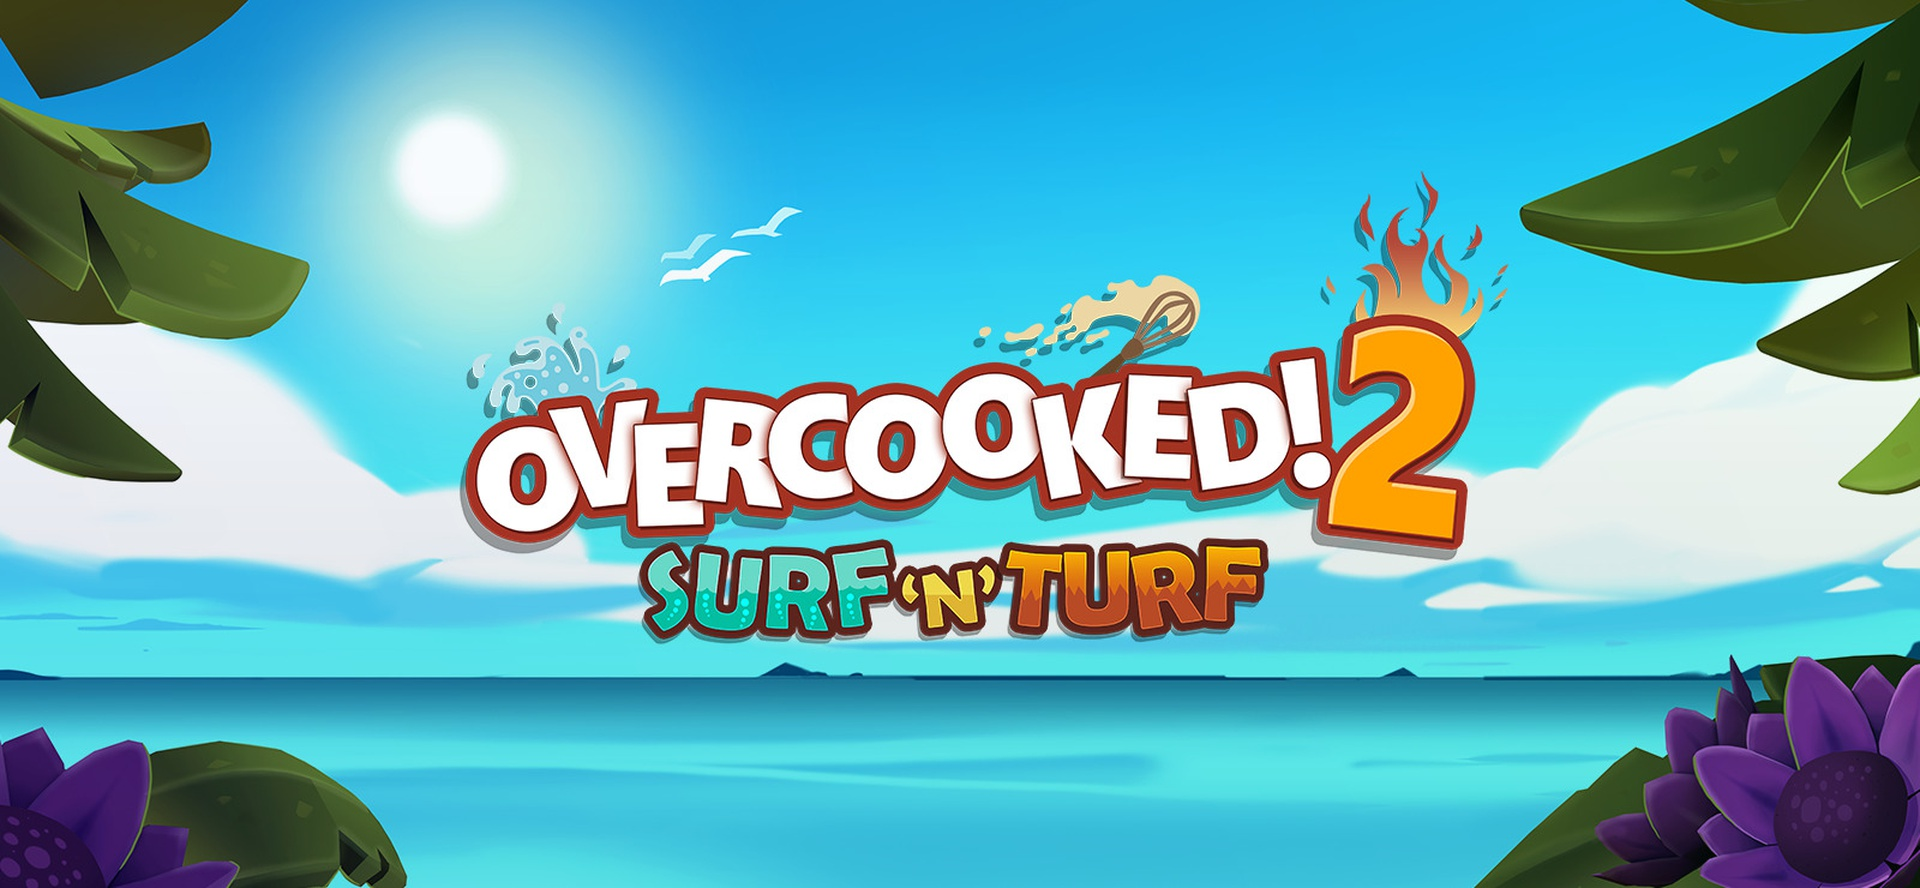 Overcooked 2 - Surf 'n' Turf Video